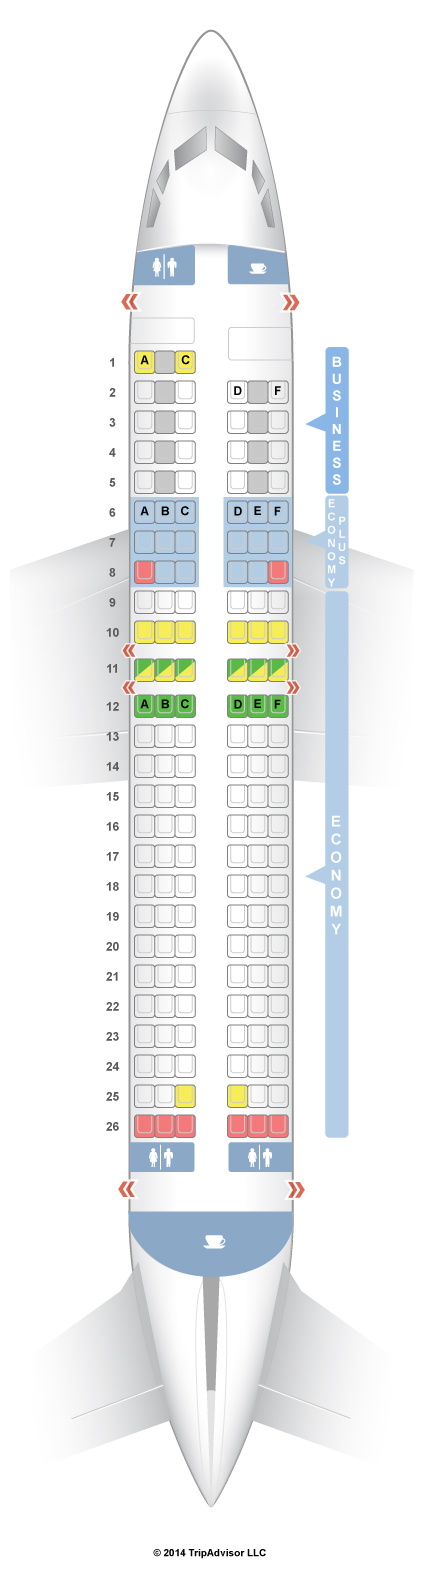 Seatguru Seat Map Lot Polish Airlines Boeing 737 400 734 Seatguru Spirit Airlines Airbus